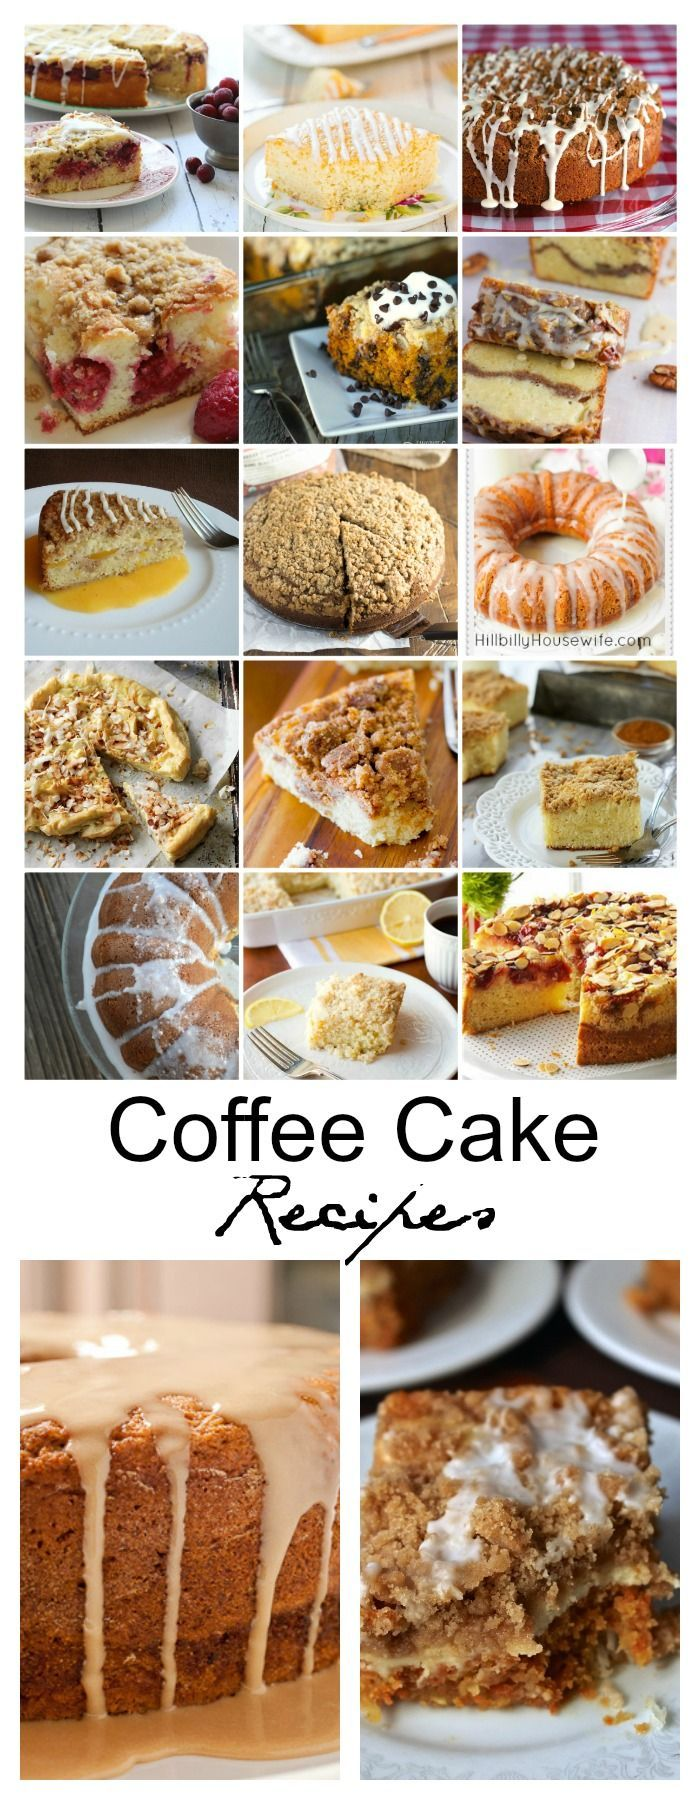 Cake recipes with coffee in them